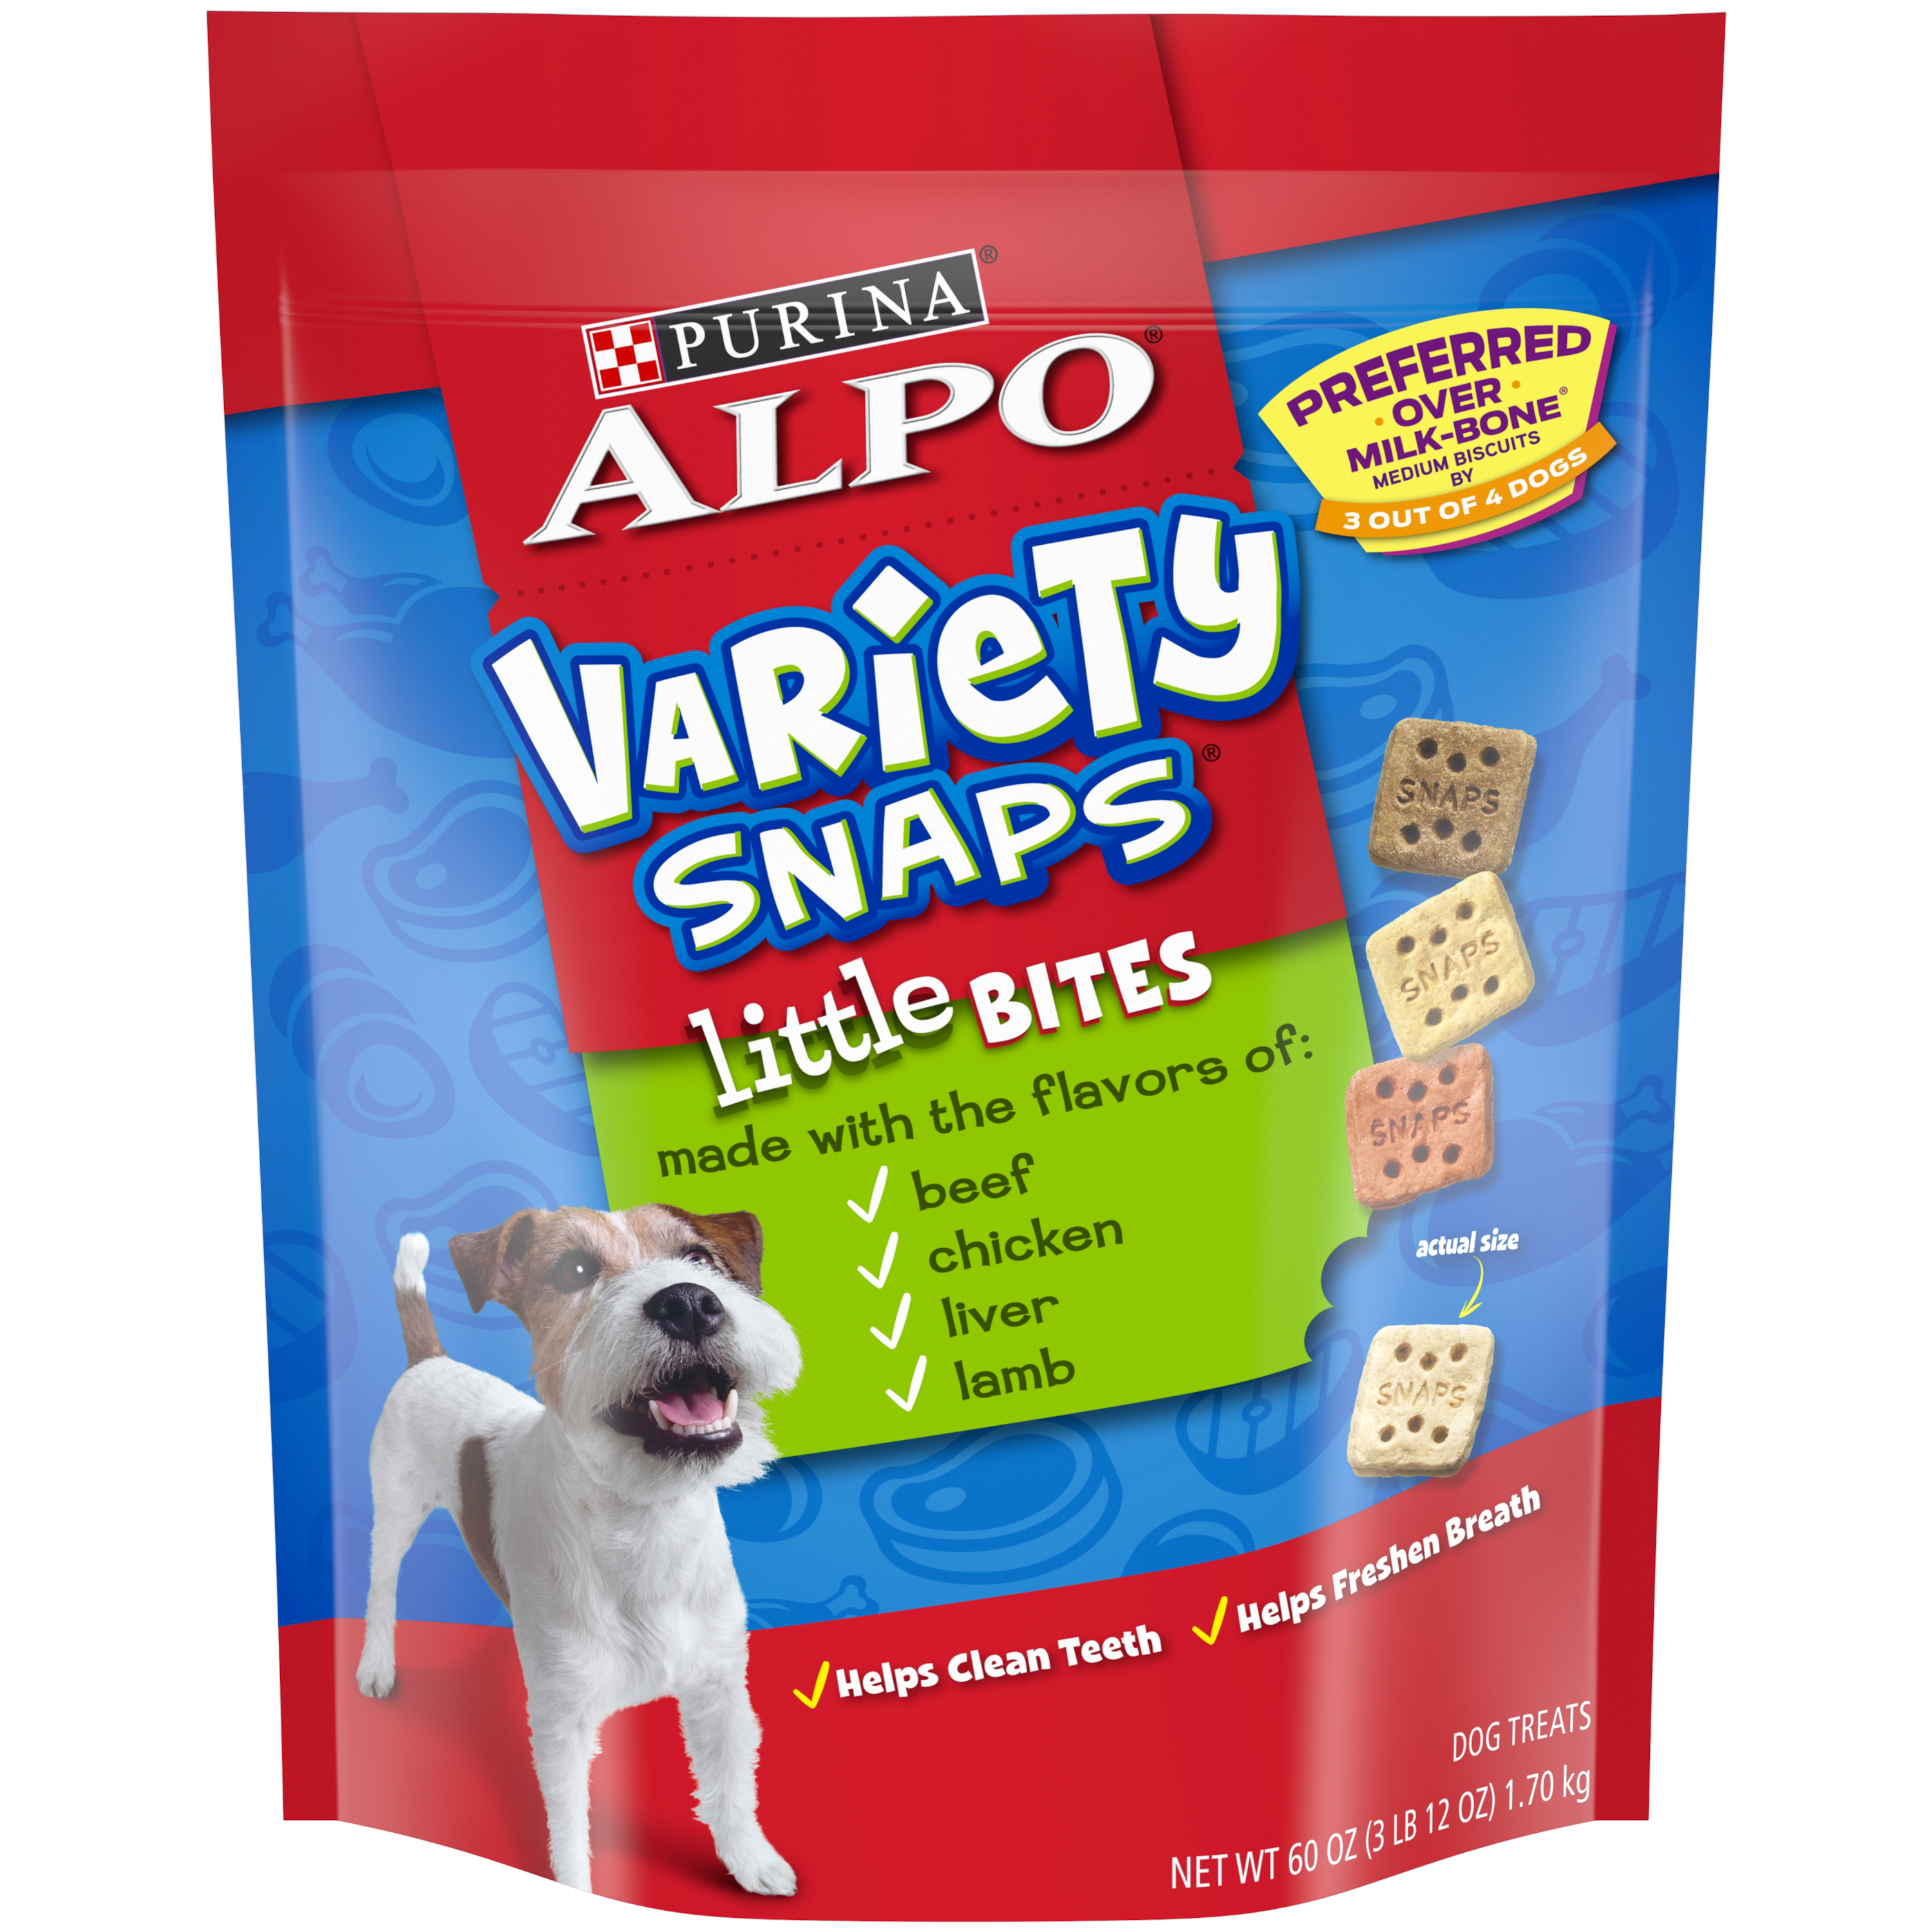 Purina ALPO Variety Snaps Little Bites Dog Treats With Beef Chicken Liver & Lamb Flavors Dog Treats - 60 oz. Pouch